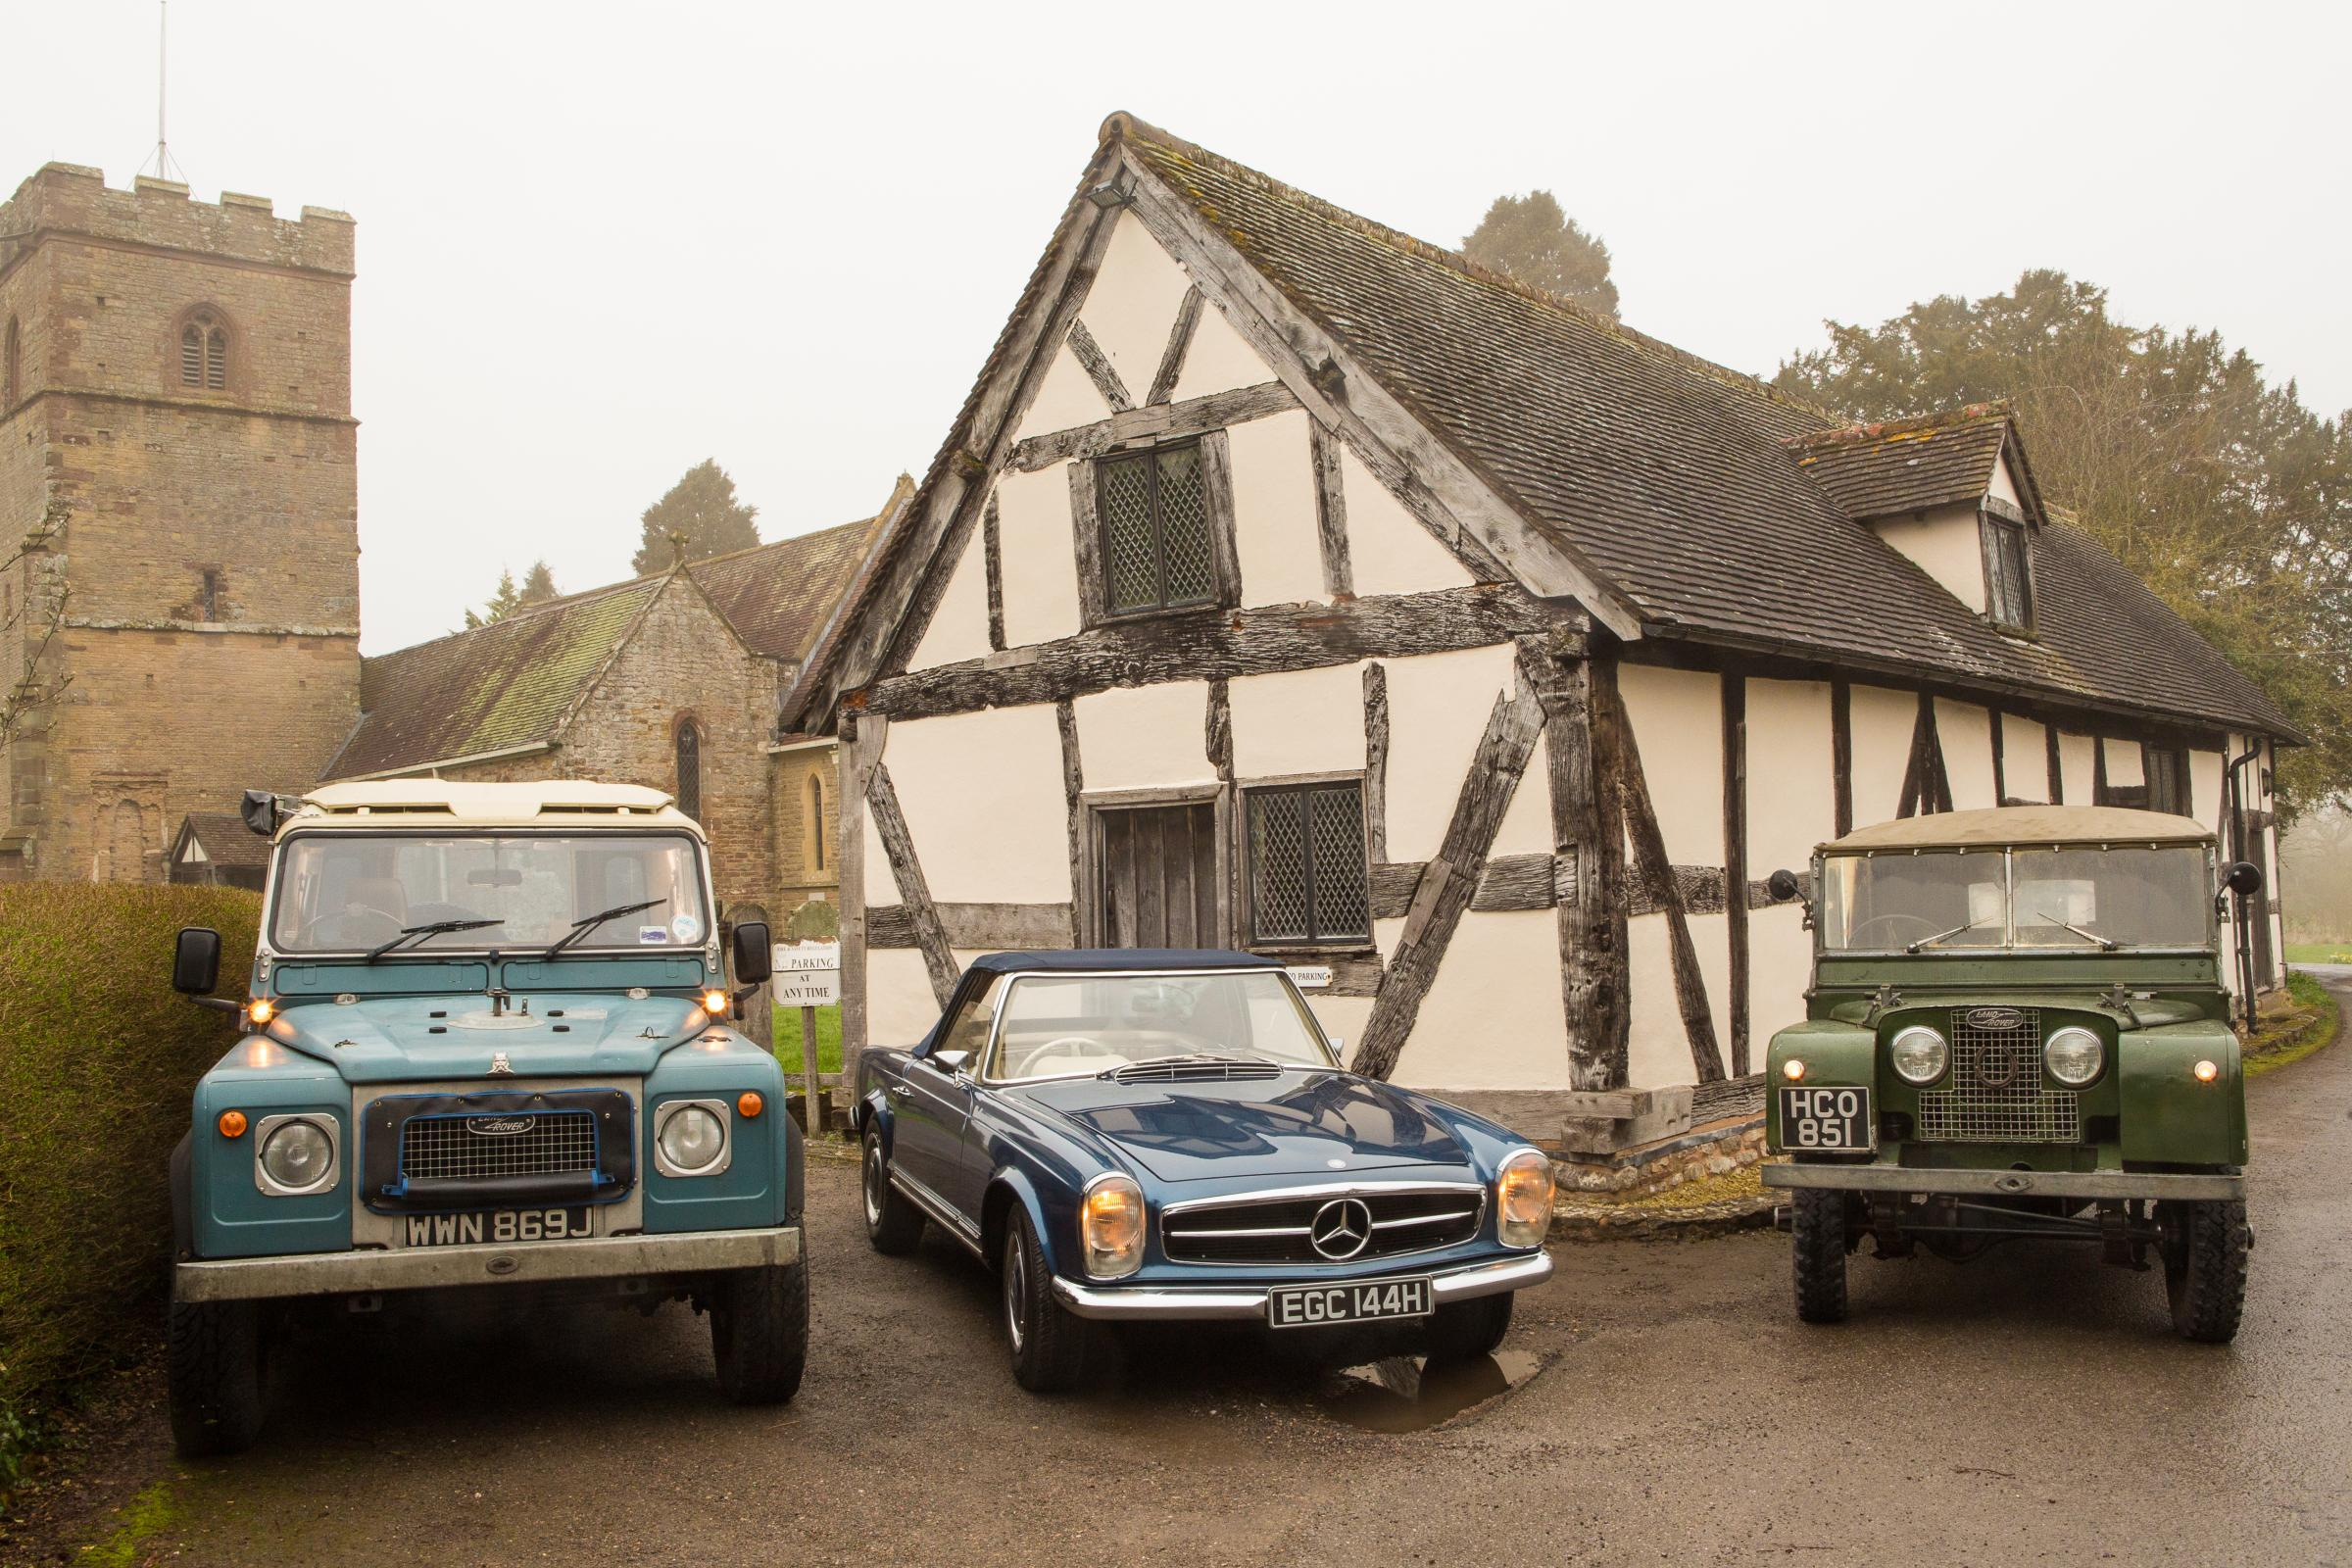 John Bradshaw's Series 4 Land Rover, Alan Torbet's Mercedes SL and Jon Hutching's Series 1 Land Rover outside the Ale House,. Andy Meany Photography